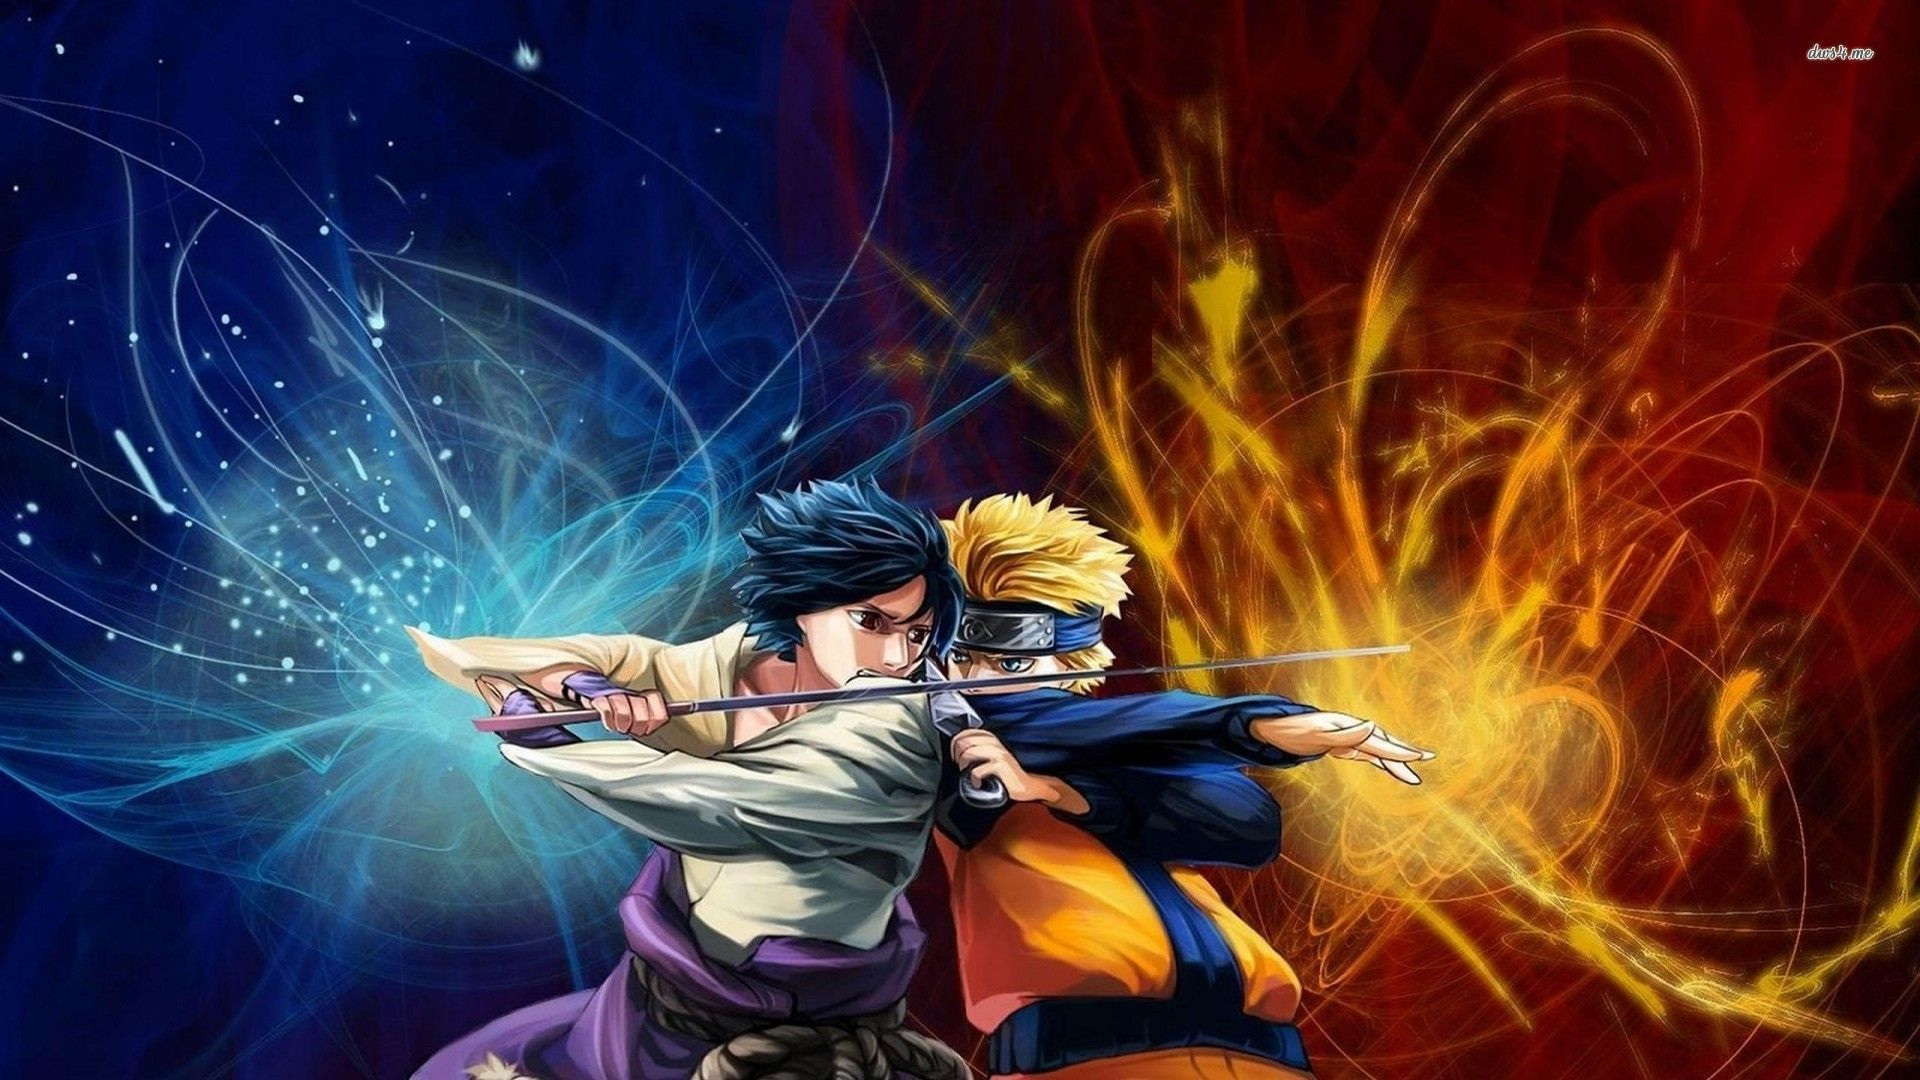 Naruto Shippuden Vs Sasuke Uchiha Wallpaper Hd 1920x1080 518